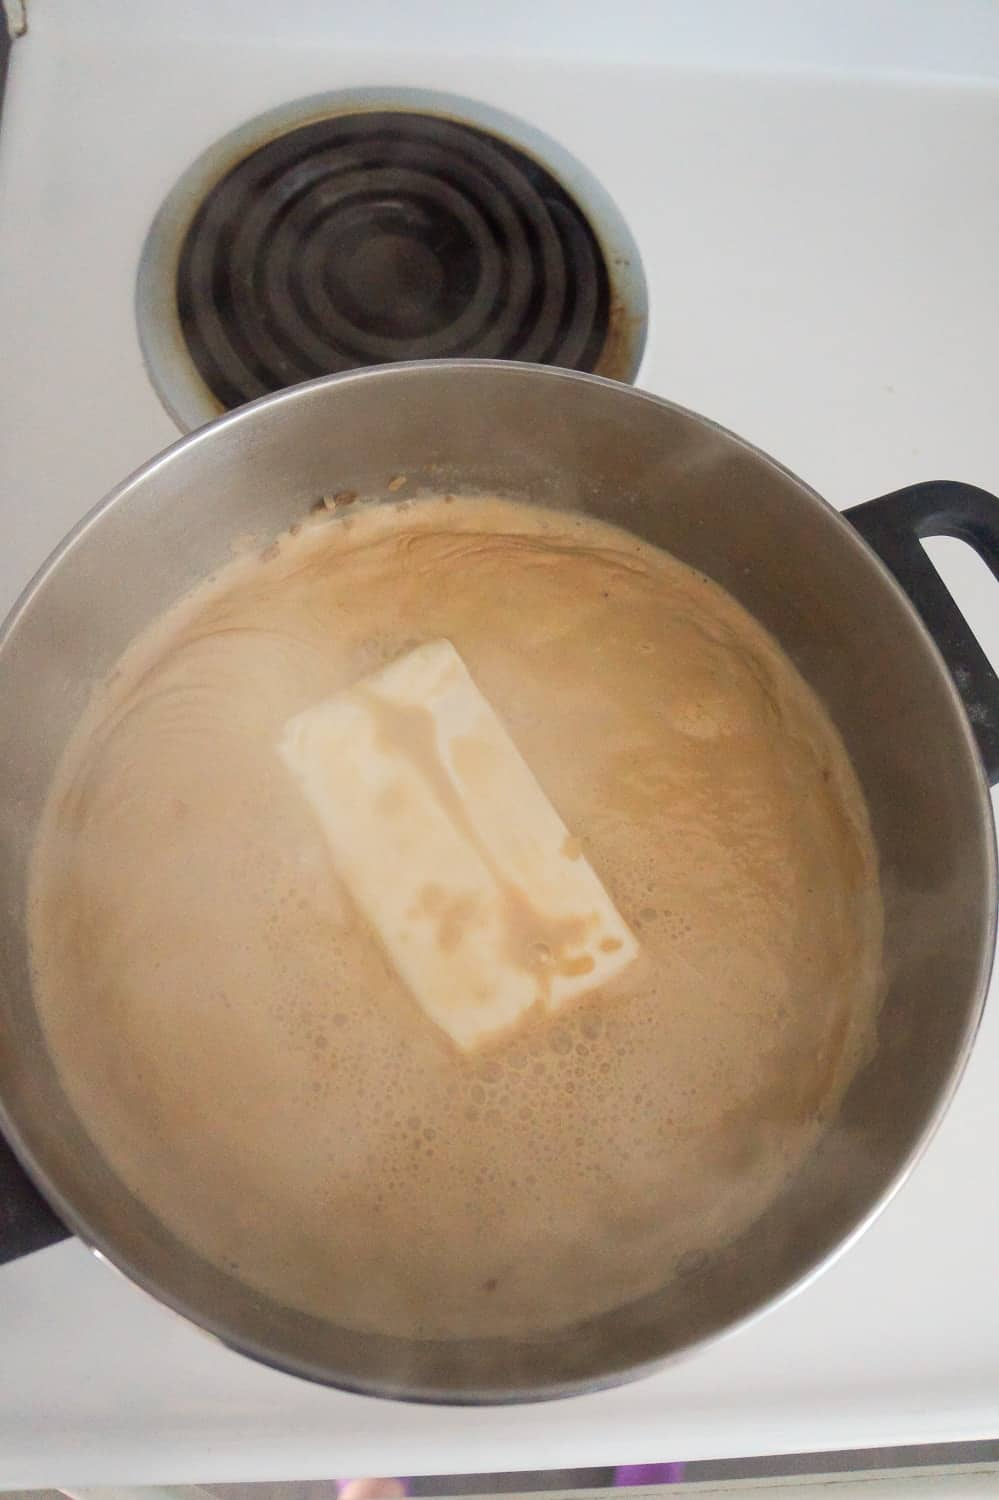 cream cheese brick added to onion soup in large saucepan